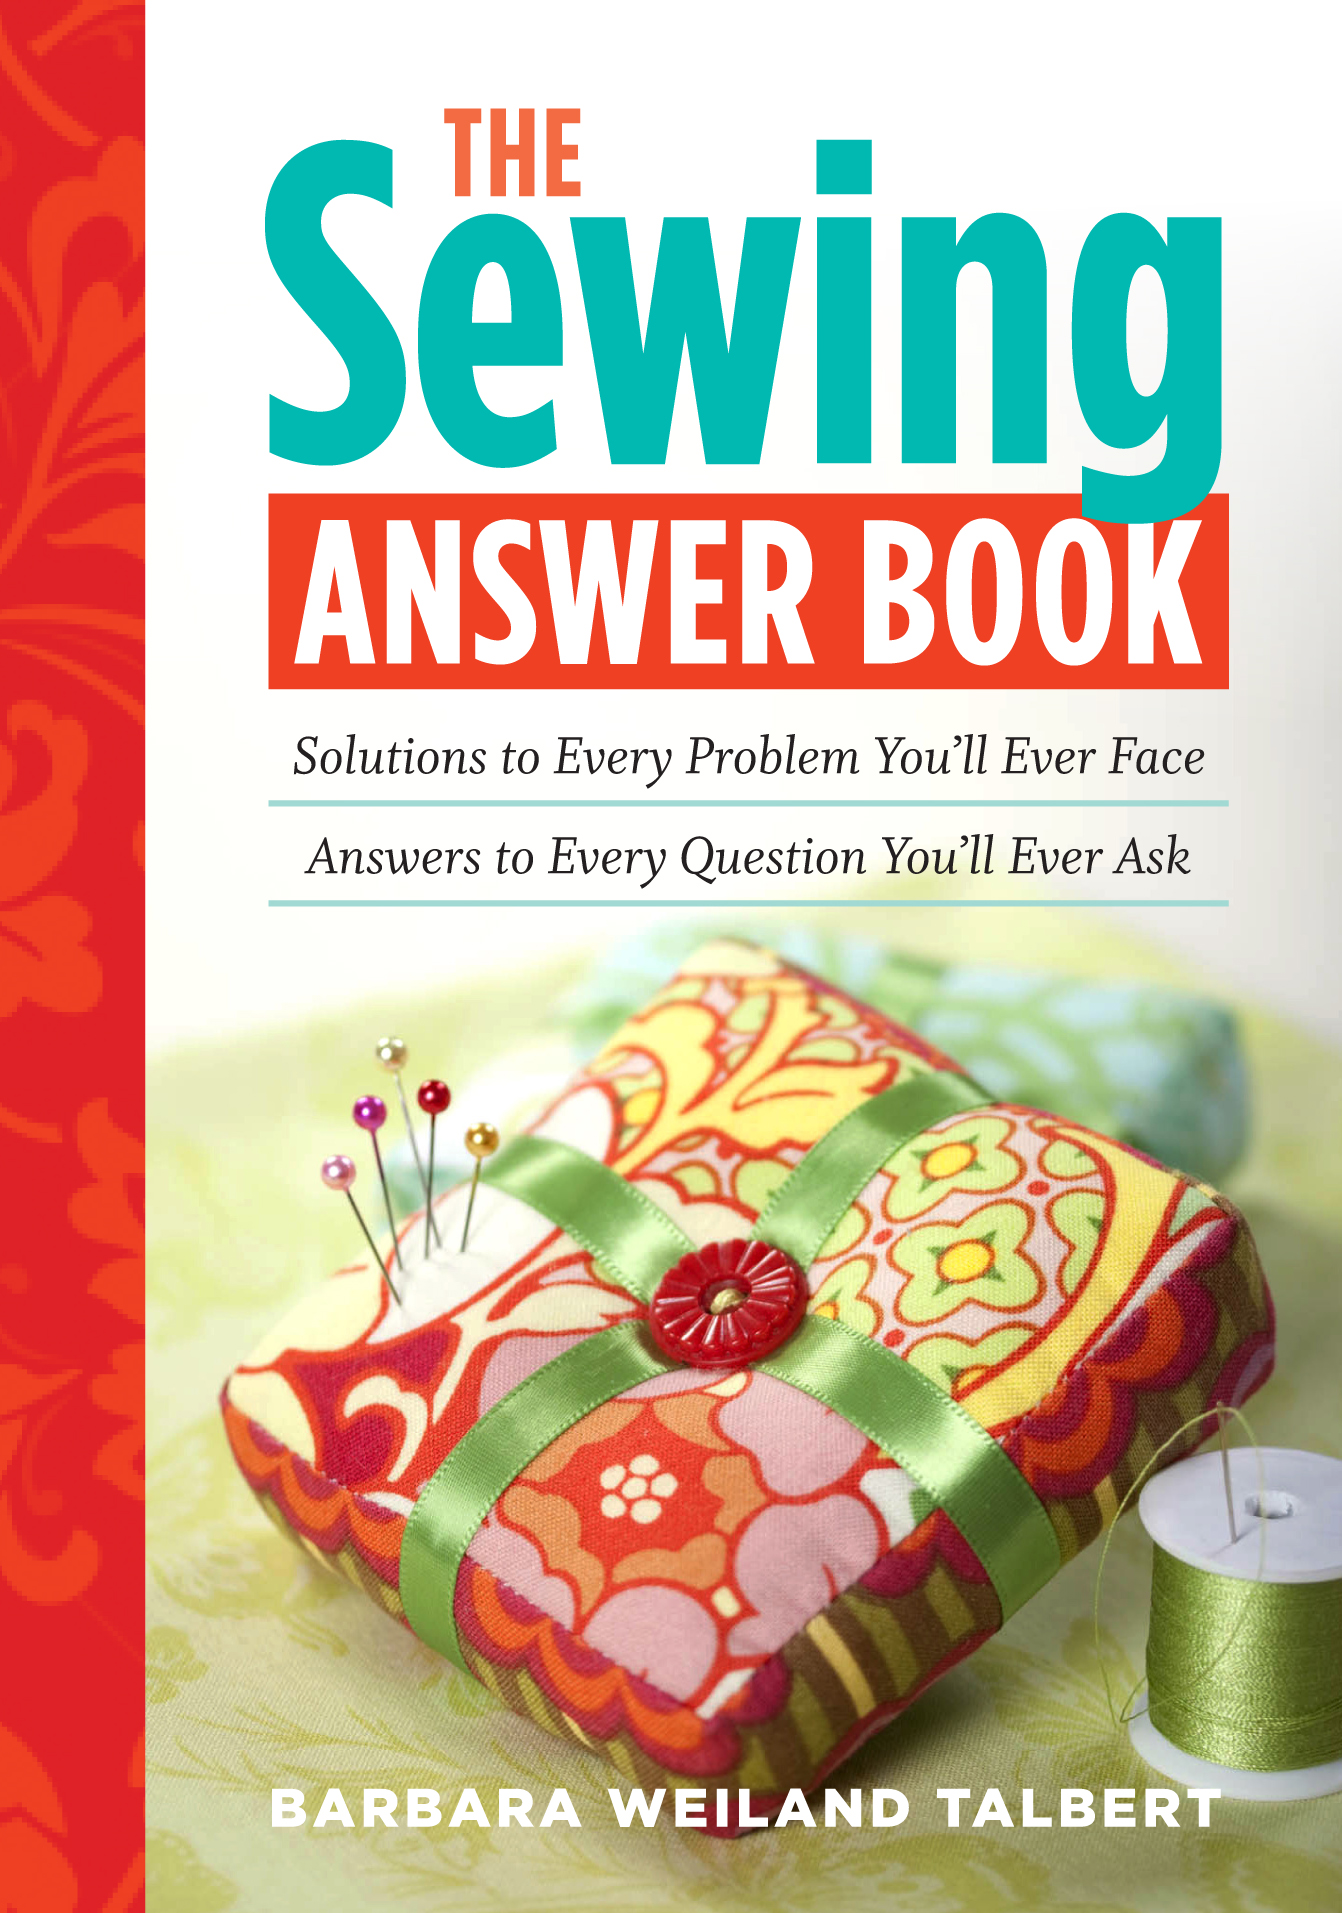 The Sewing Answer Book Solutions to Every Problem You'll Ever Face; Answers to Every Question You'll Ever Ask - Barbara Weiland Talbert